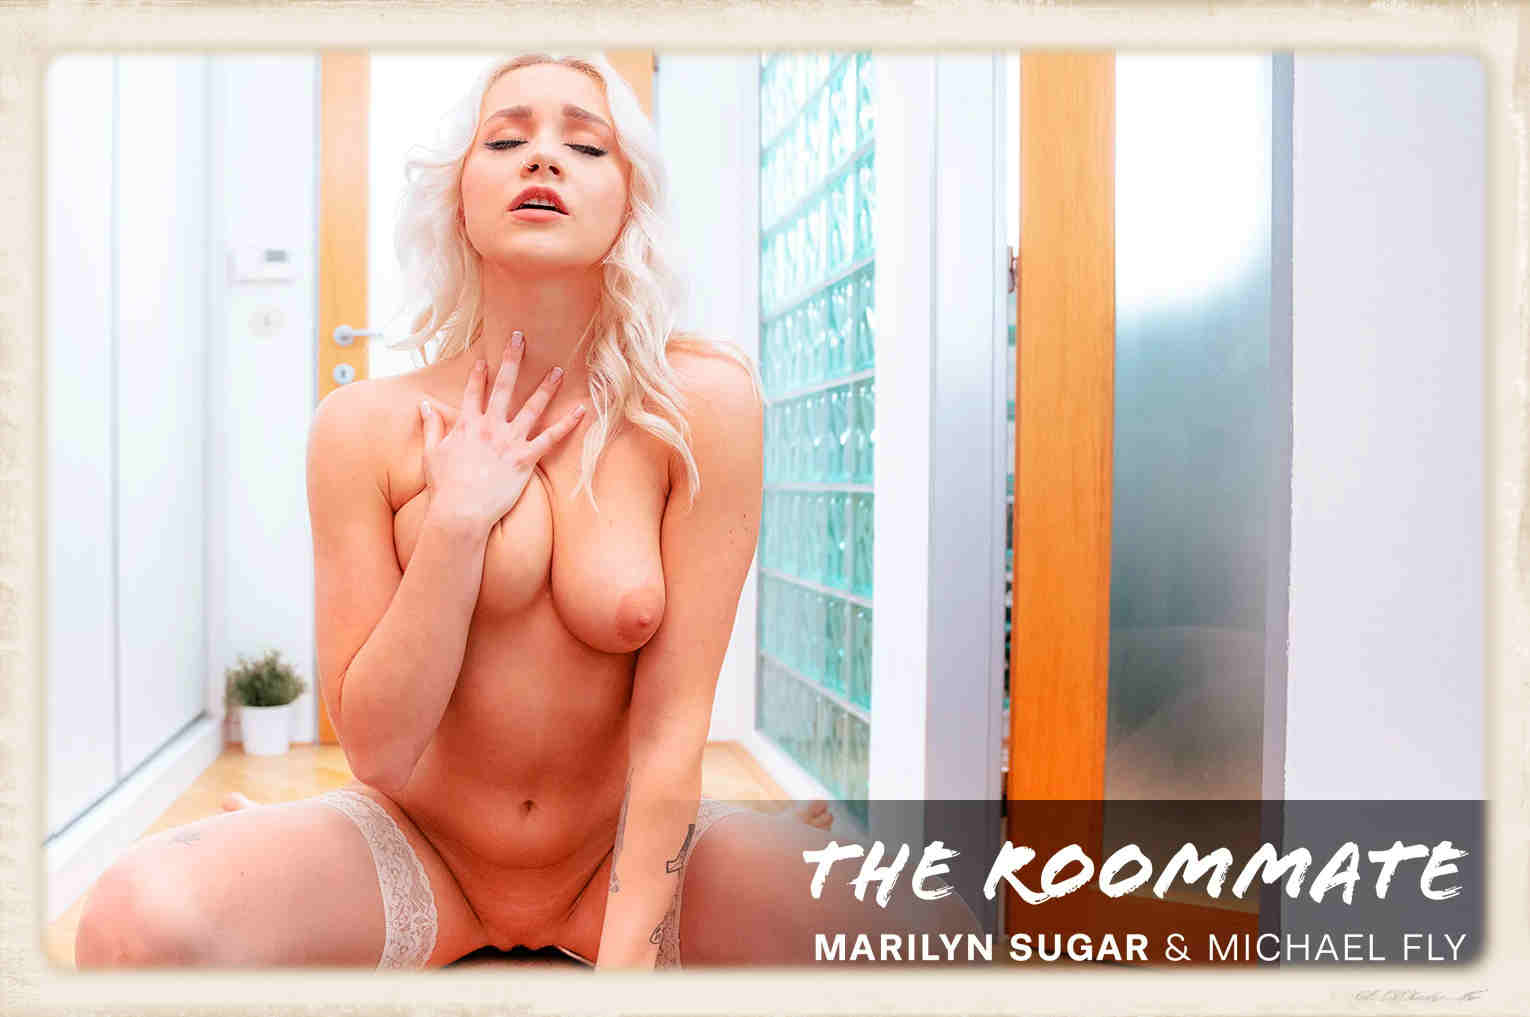 Marilyn Sugar The Roommate for Virtual Real Porn